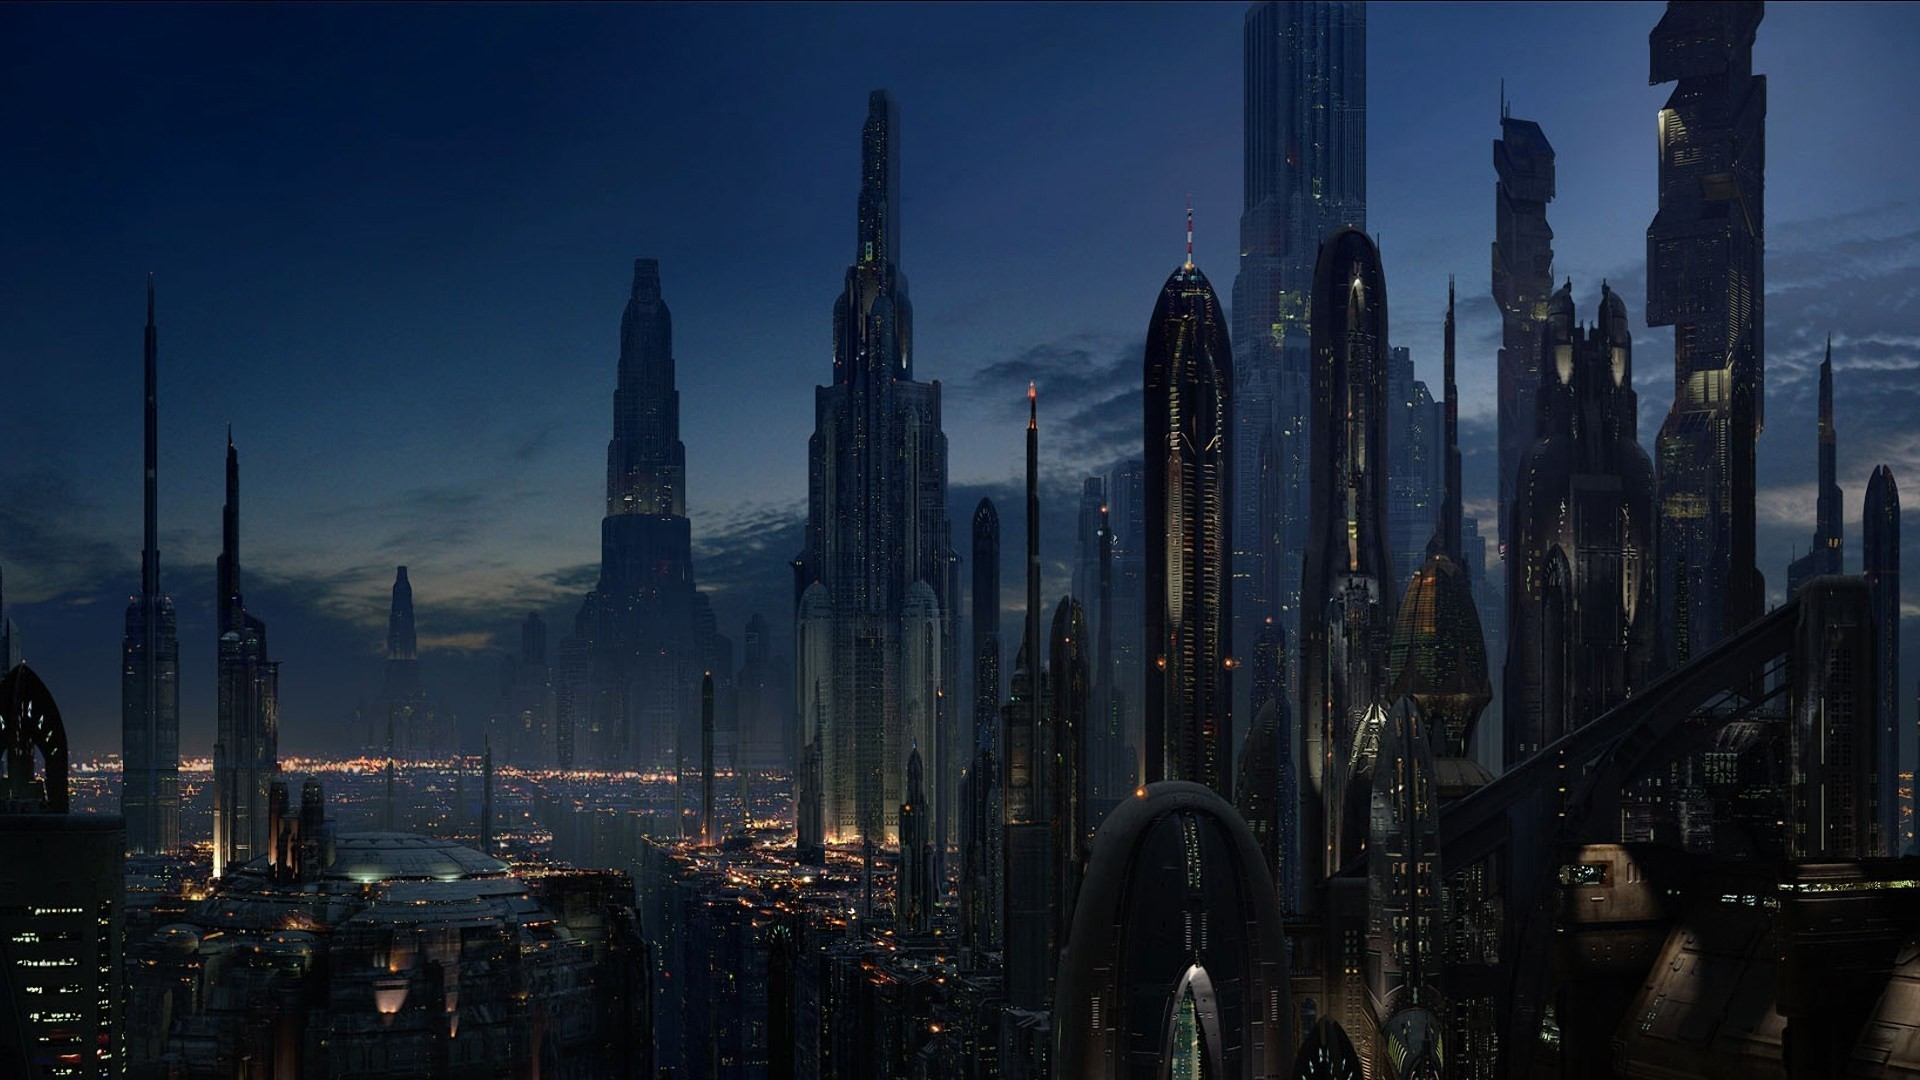 1920x1080 Great Star Wars Coruscant Wallpaper Free Download Wallpapers - Download  Free Cool Wallpapers for PC Download